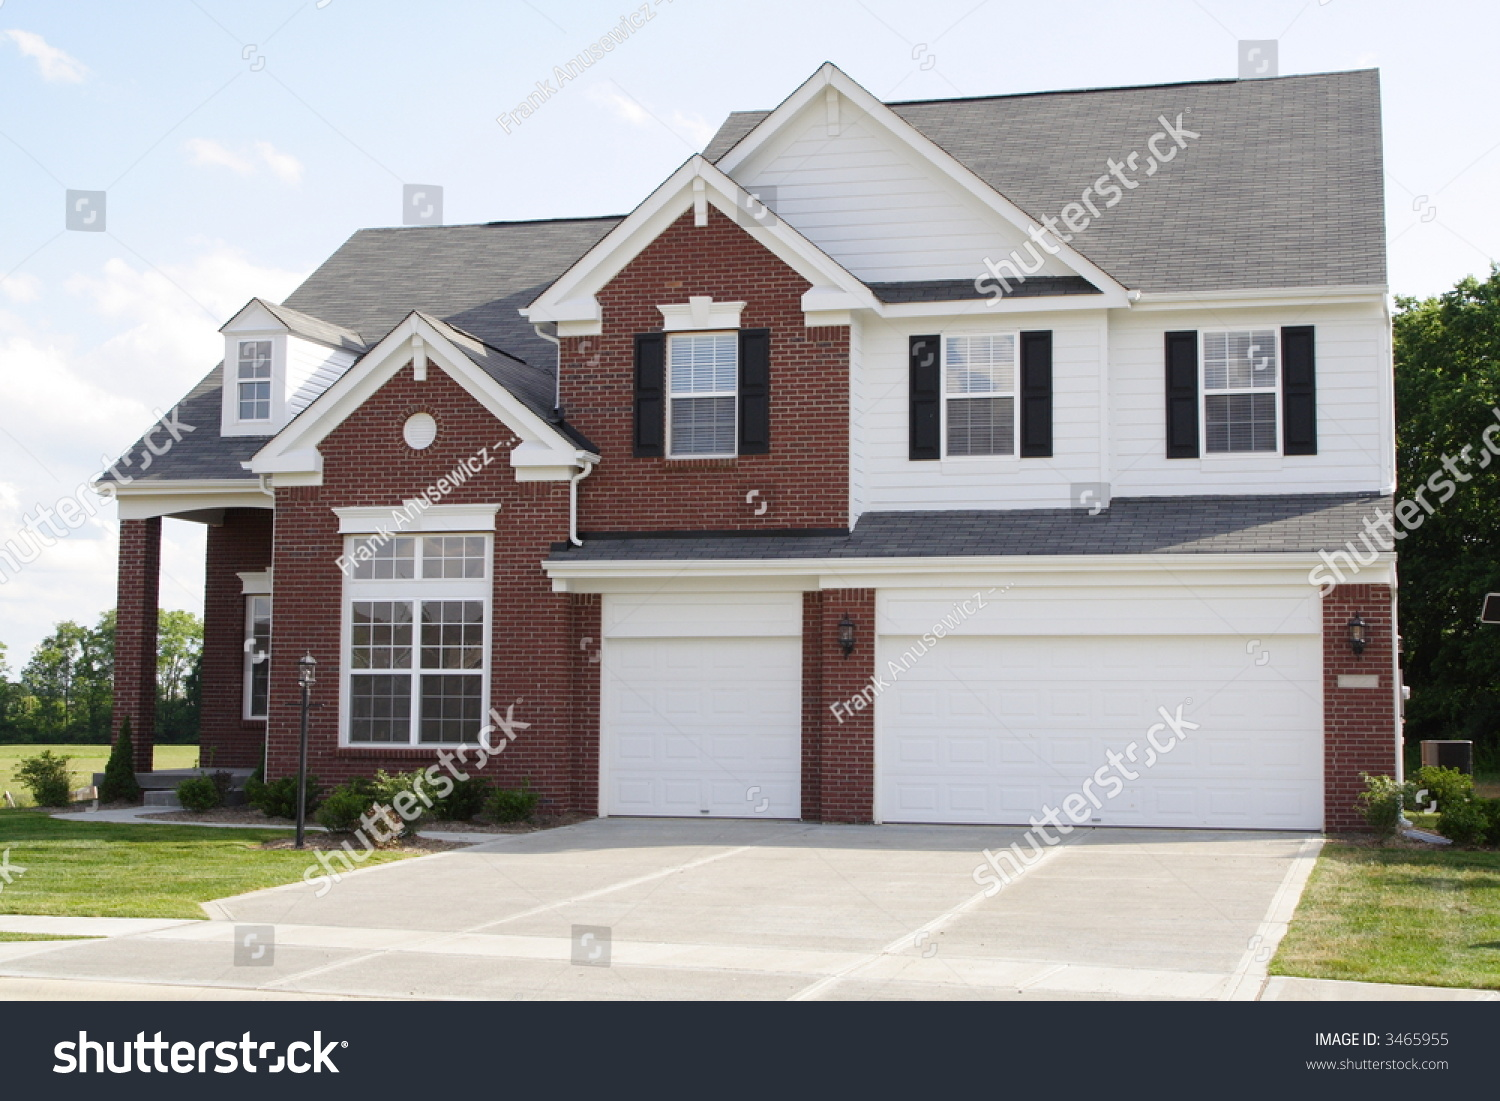 New 2 story brick home with 3 car garage stock photo for Brick garages prices